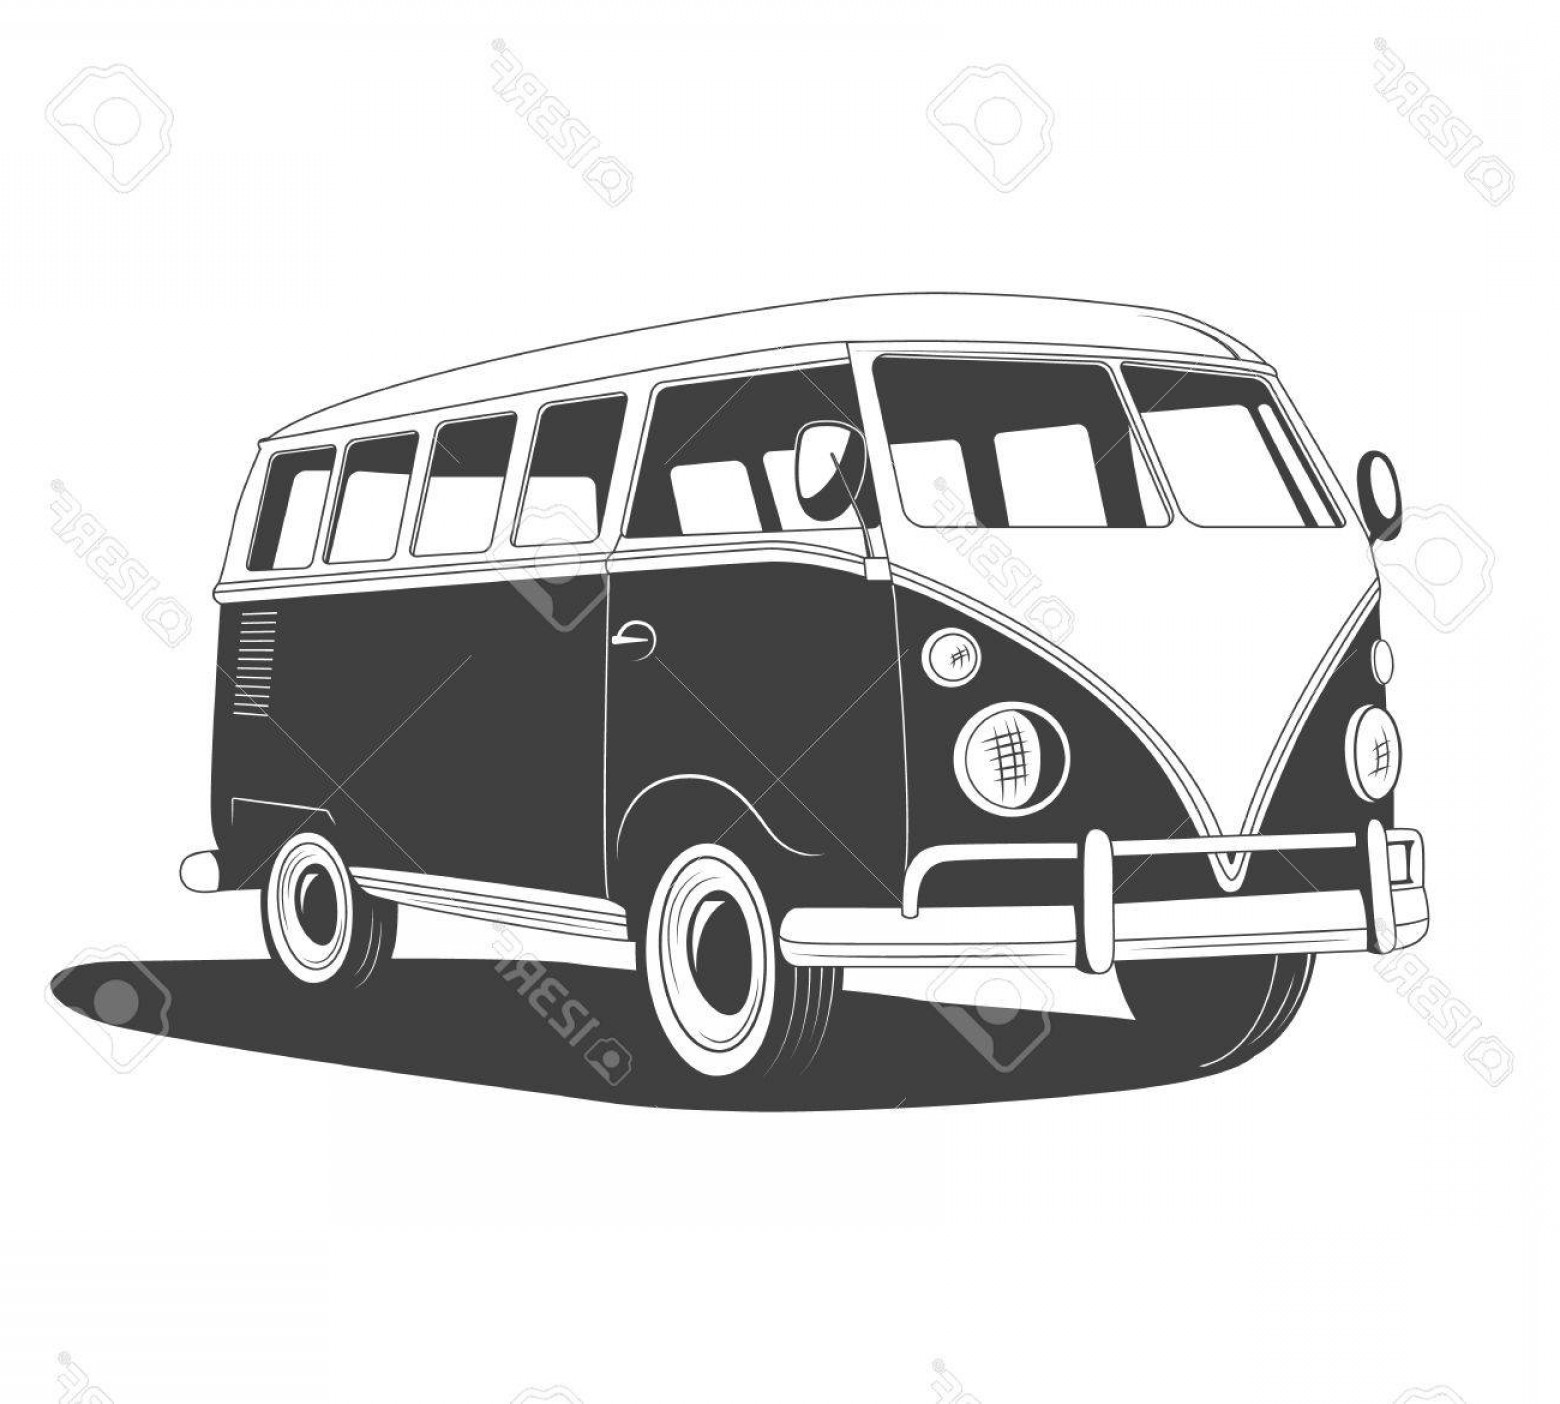 Volkswagen Bus Vector: Photostock Vector Retro Travel Bus With Shadow In Side View Vector Eps Illustration